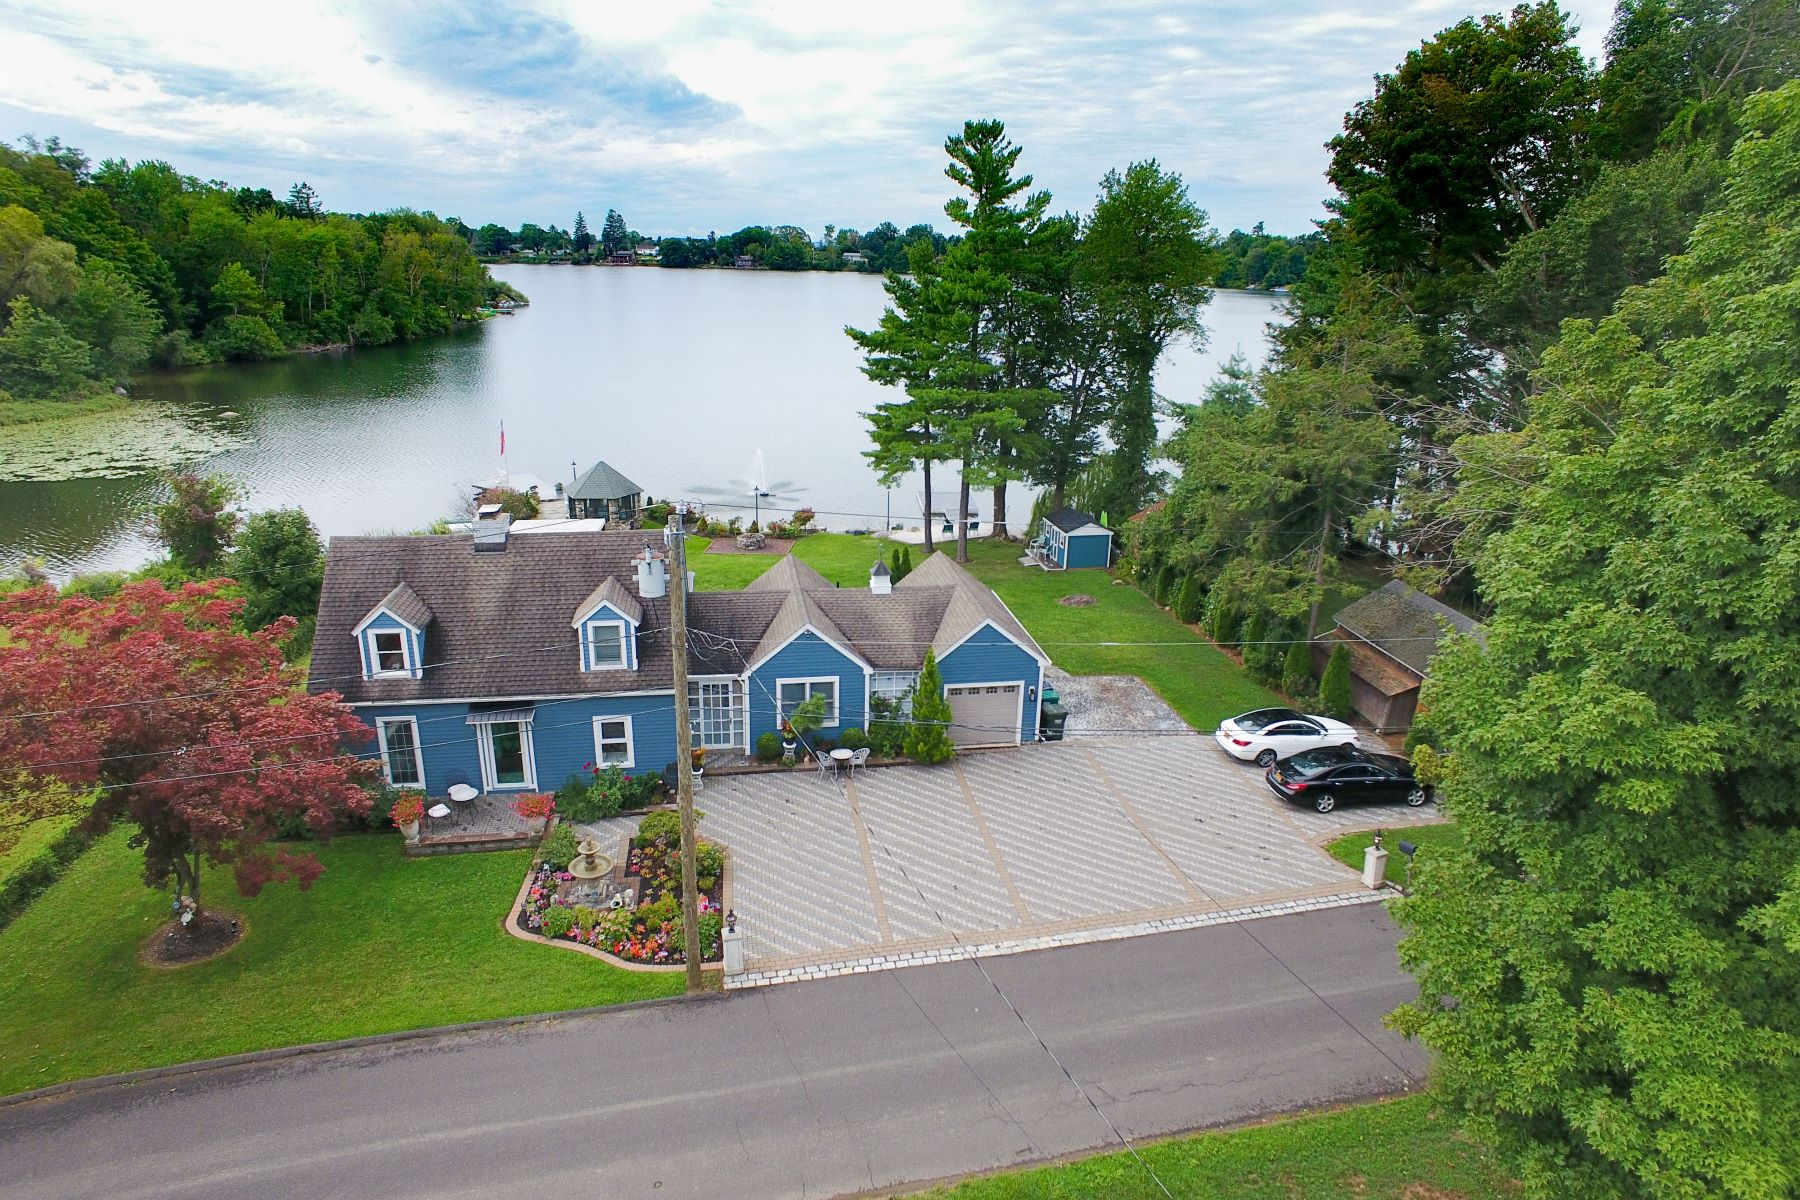 Single Family Homes for Sale at Live Like You're on Vacation 51 Ball Pond Road East New Fairfield, Connecticut 06812 United States